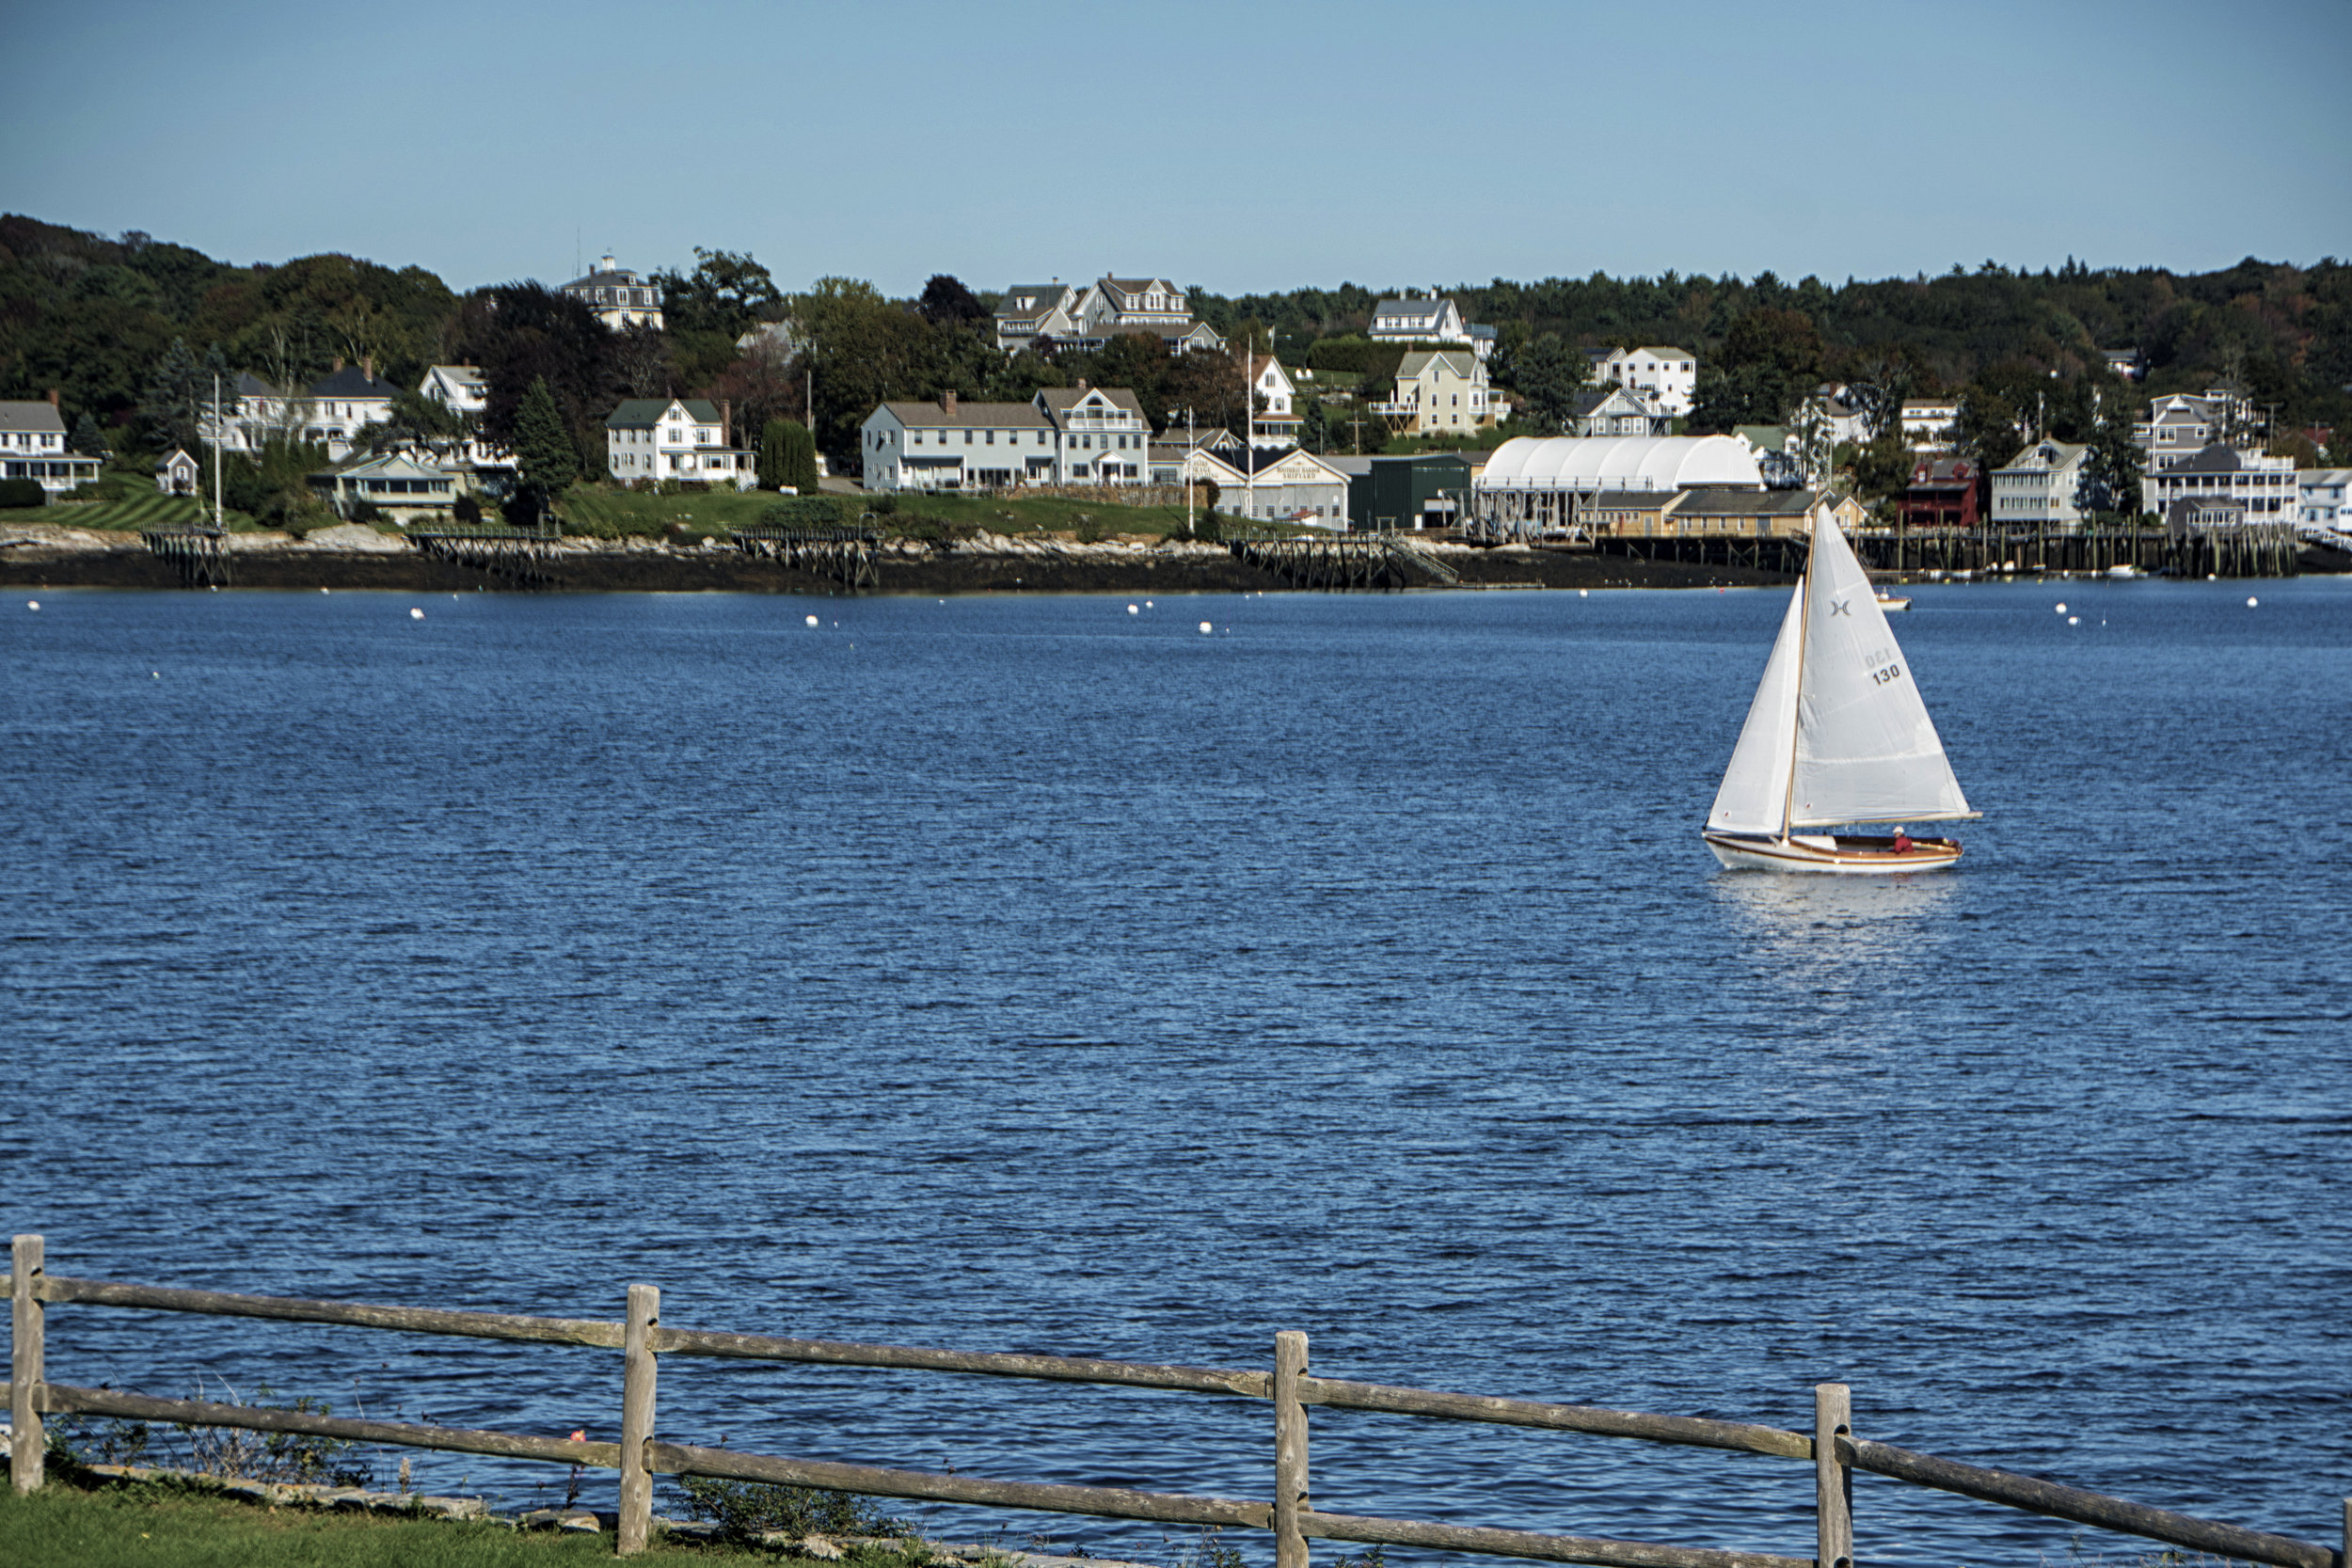 sailboat, Boothbay Harbor, Maine